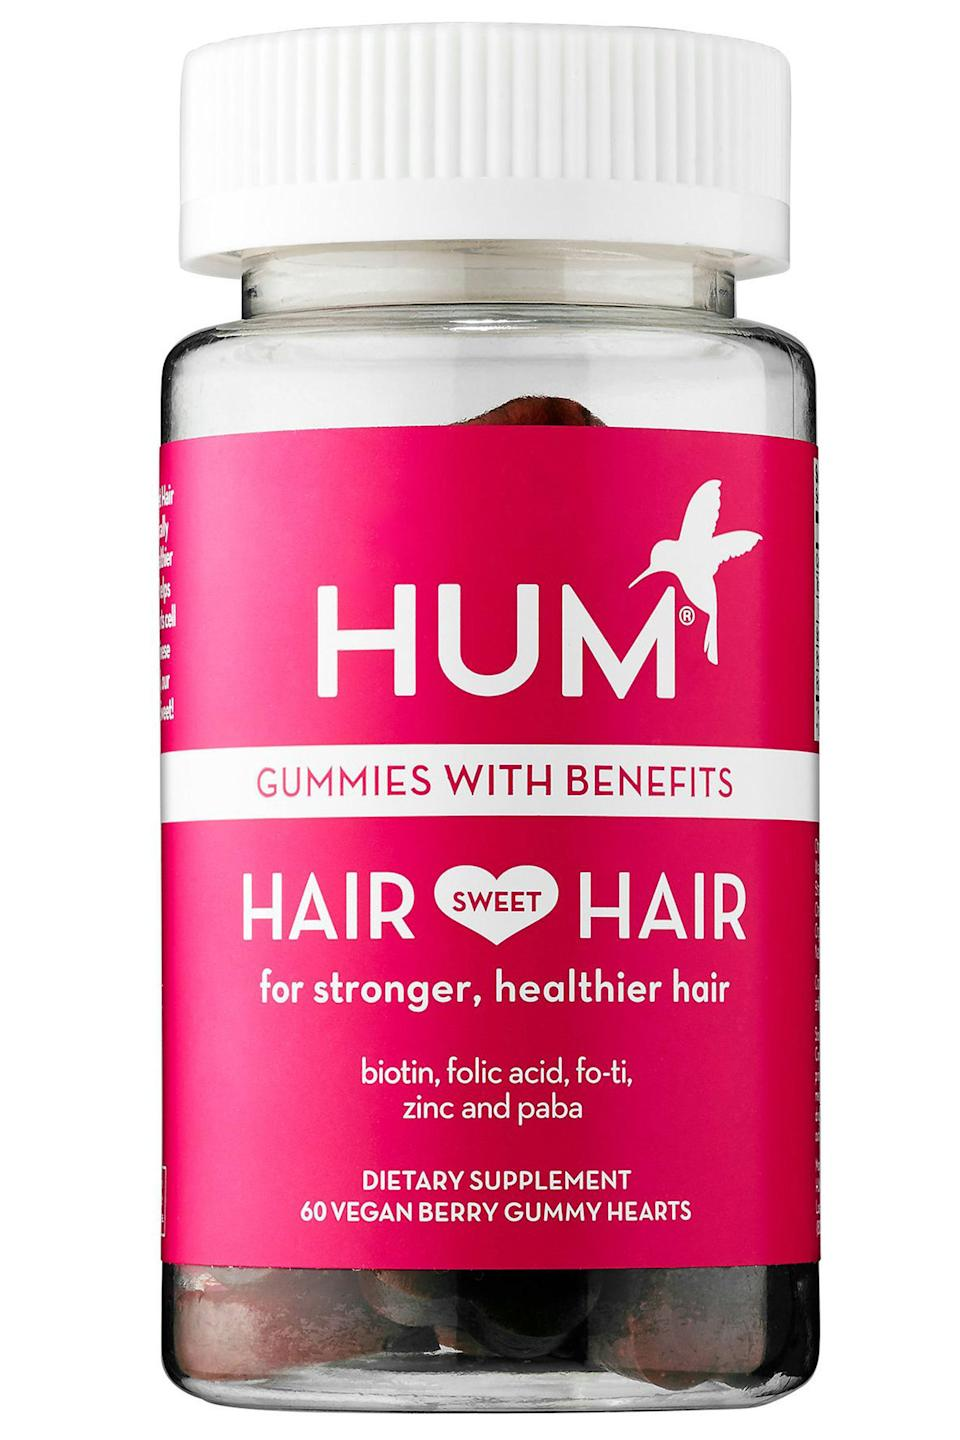 """<p><strong>HUM Nutrition</strong></p><p>sephora.com</p><p><strong>$10.00</strong></p><p><a href=""""https://go.redirectingat.com?id=74968X1596630&url=https%3A%2F%2Fwww.sephora.com%2Fproduct%2Fhair-sweet-hair-P415922&sref=https%3A%2F%2Fwww.harpersbazaar.com%2Fbeauty%2Fhair%2Fg7807%2Fhair-growth-vitamins%2F"""" rel=""""nofollow noopener"""" target=""""_blank"""" data-ylk=""""slk:Shop Now"""" class=""""link rapid-noclick-resp"""">Shop Now</a></p><p>These gluten-free, vegan chews promote stronger hair that can grow longer and maintain its color better, when consumed twice daily. The usual suspects (biotin, folic acid) make an appearance in these berry-flavored gummies, but it's the PABA (which can reportedly fight grays by boosting hair's natural pigmentation) and fo-ti (a hair-strengthening root from traditional Chinese medicine) that really make it stand out. <a href=""""https://www.bestproducts.com/beauty/g912/hair-growth-products-supplements/"""" rel=""""nofollow noopener"""" target=""""_blank"""" data-ylk=""""slk:Hum tops BestProducts.com's list"""" class=""""link rapid-noclick-resp"""">Hum tops BestProducts.com's list</a>, as well, for using sustainably sourced ingredients.</p>"""